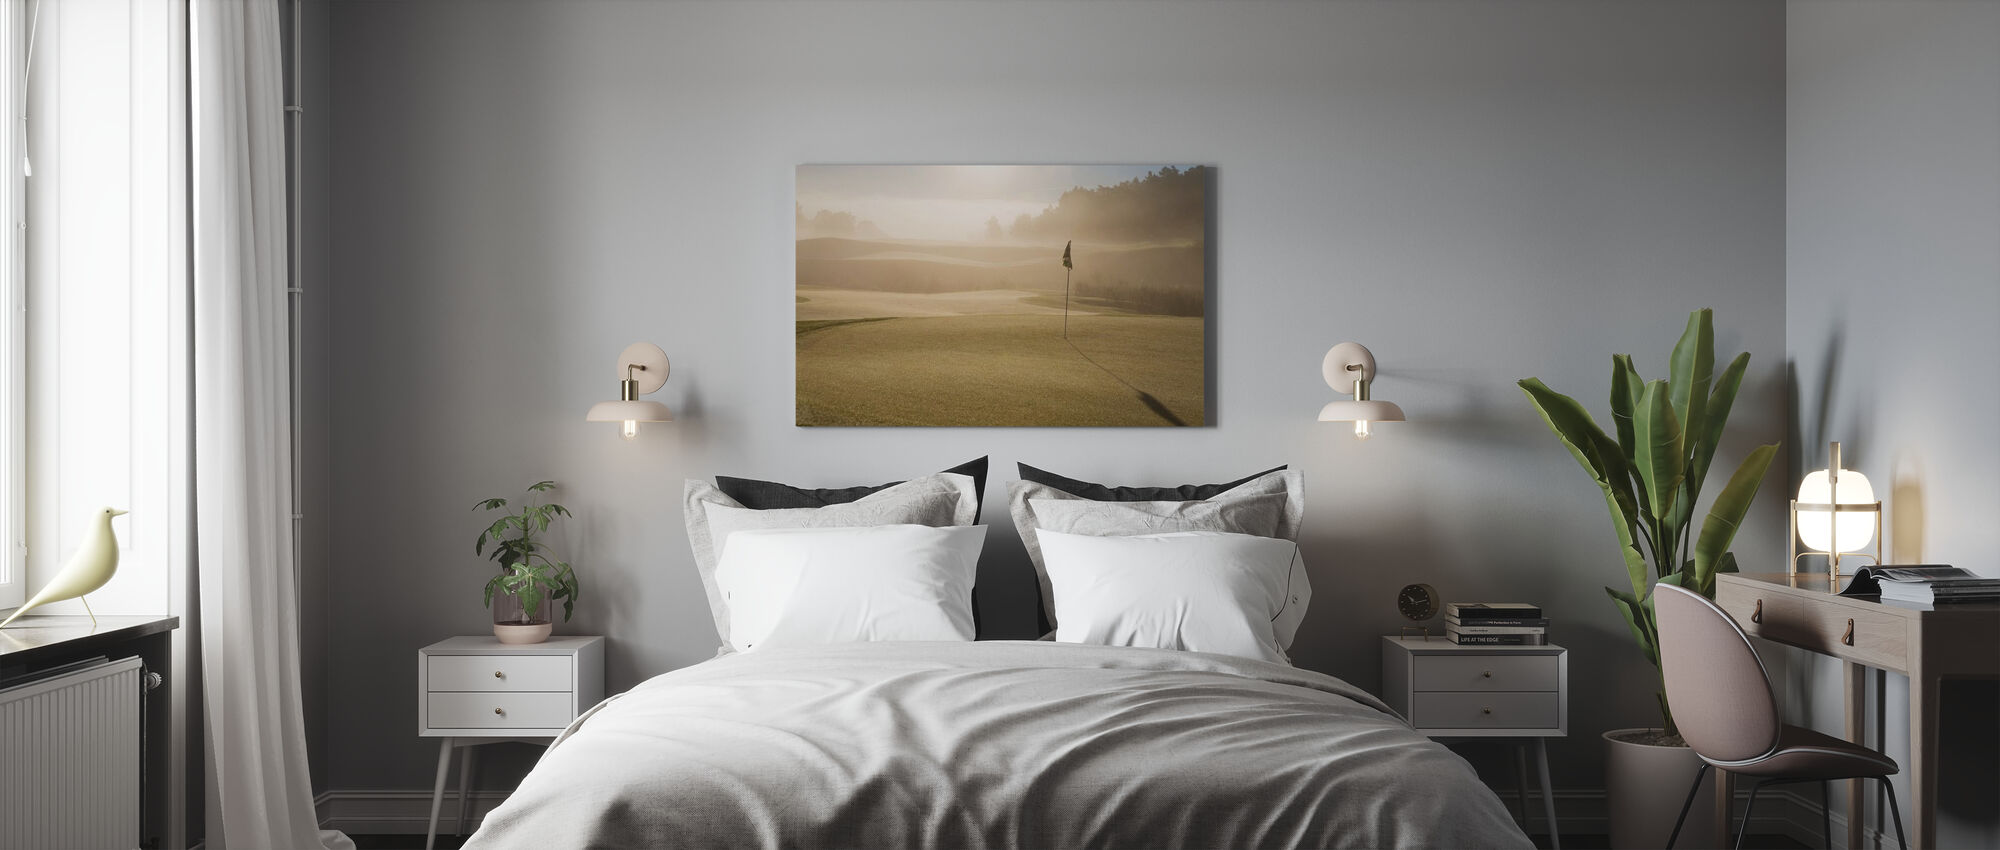 Golf Court in Mölndal, Sweden - Canvas print - Slaapkamer